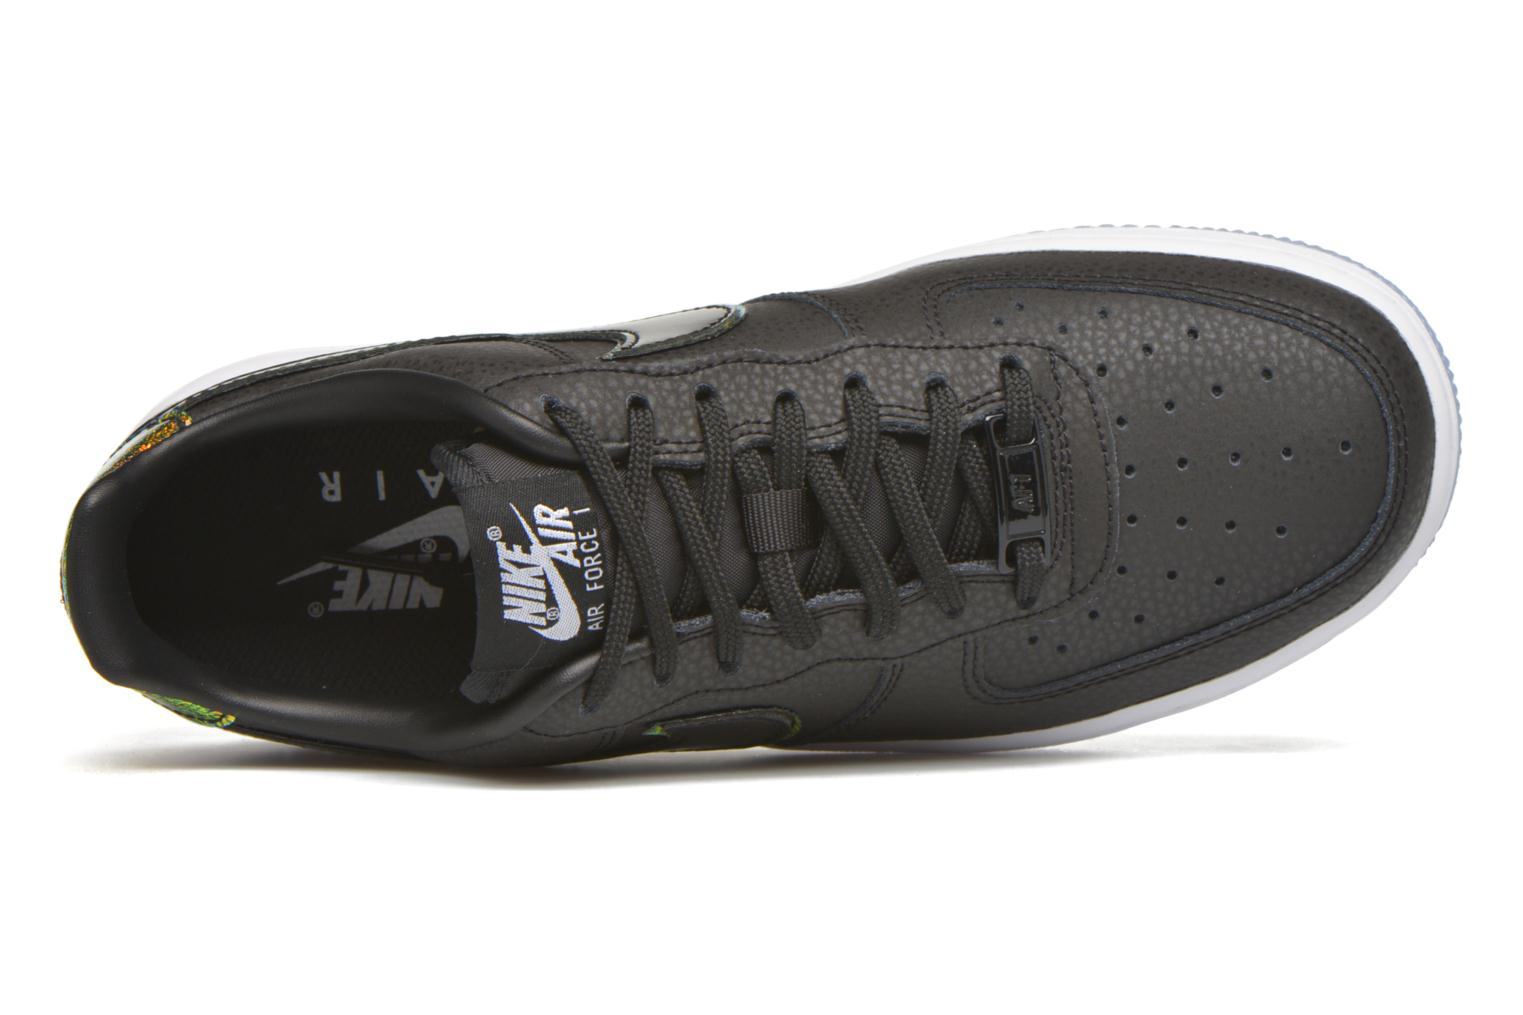 Wms Air Force 1 '07 Prm Black/Black-Pure Platinum